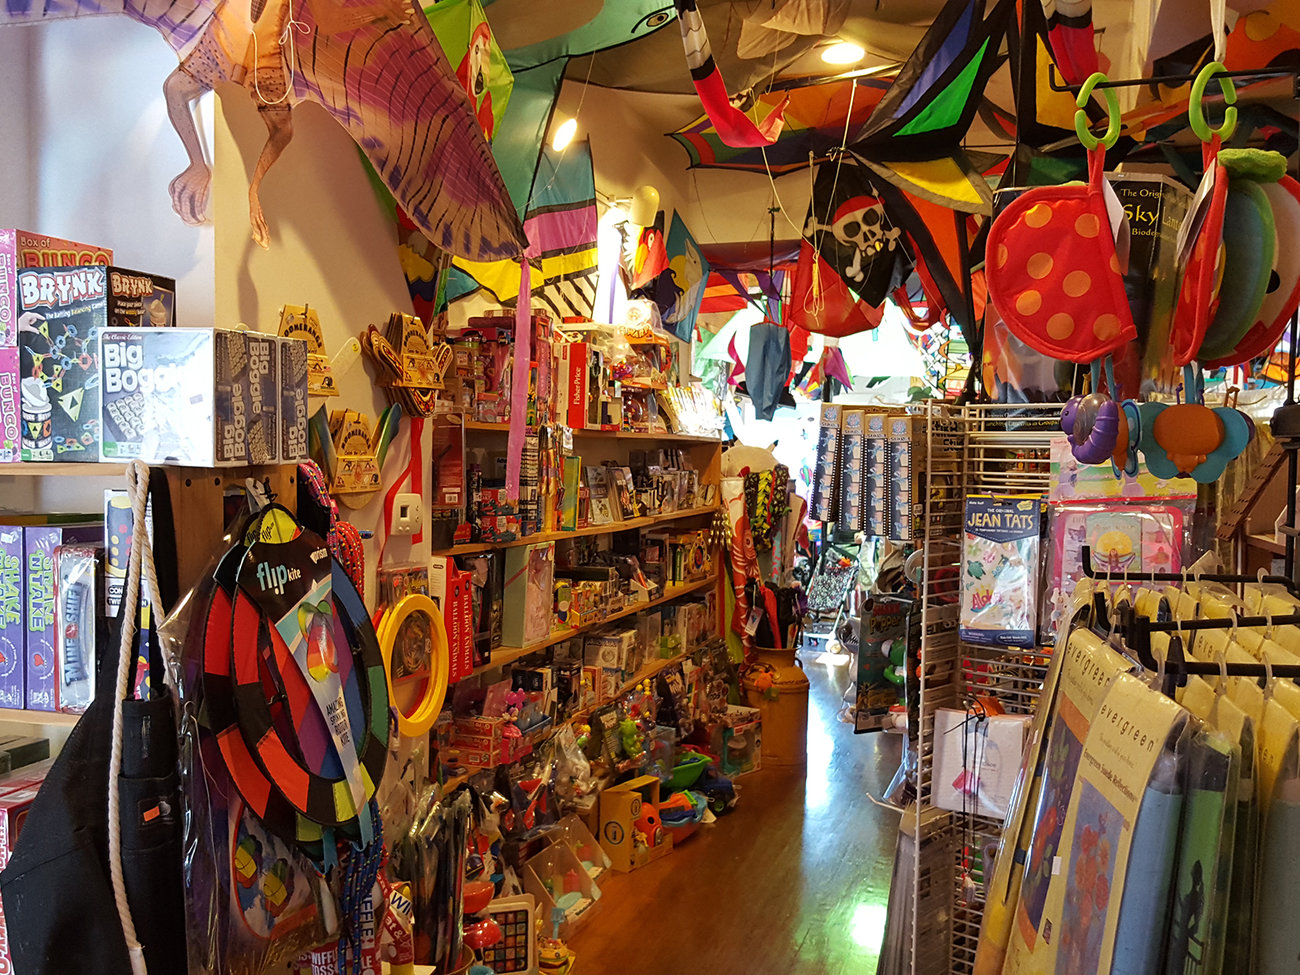 Dr. Gravity's Kite Shop in Cape Cod